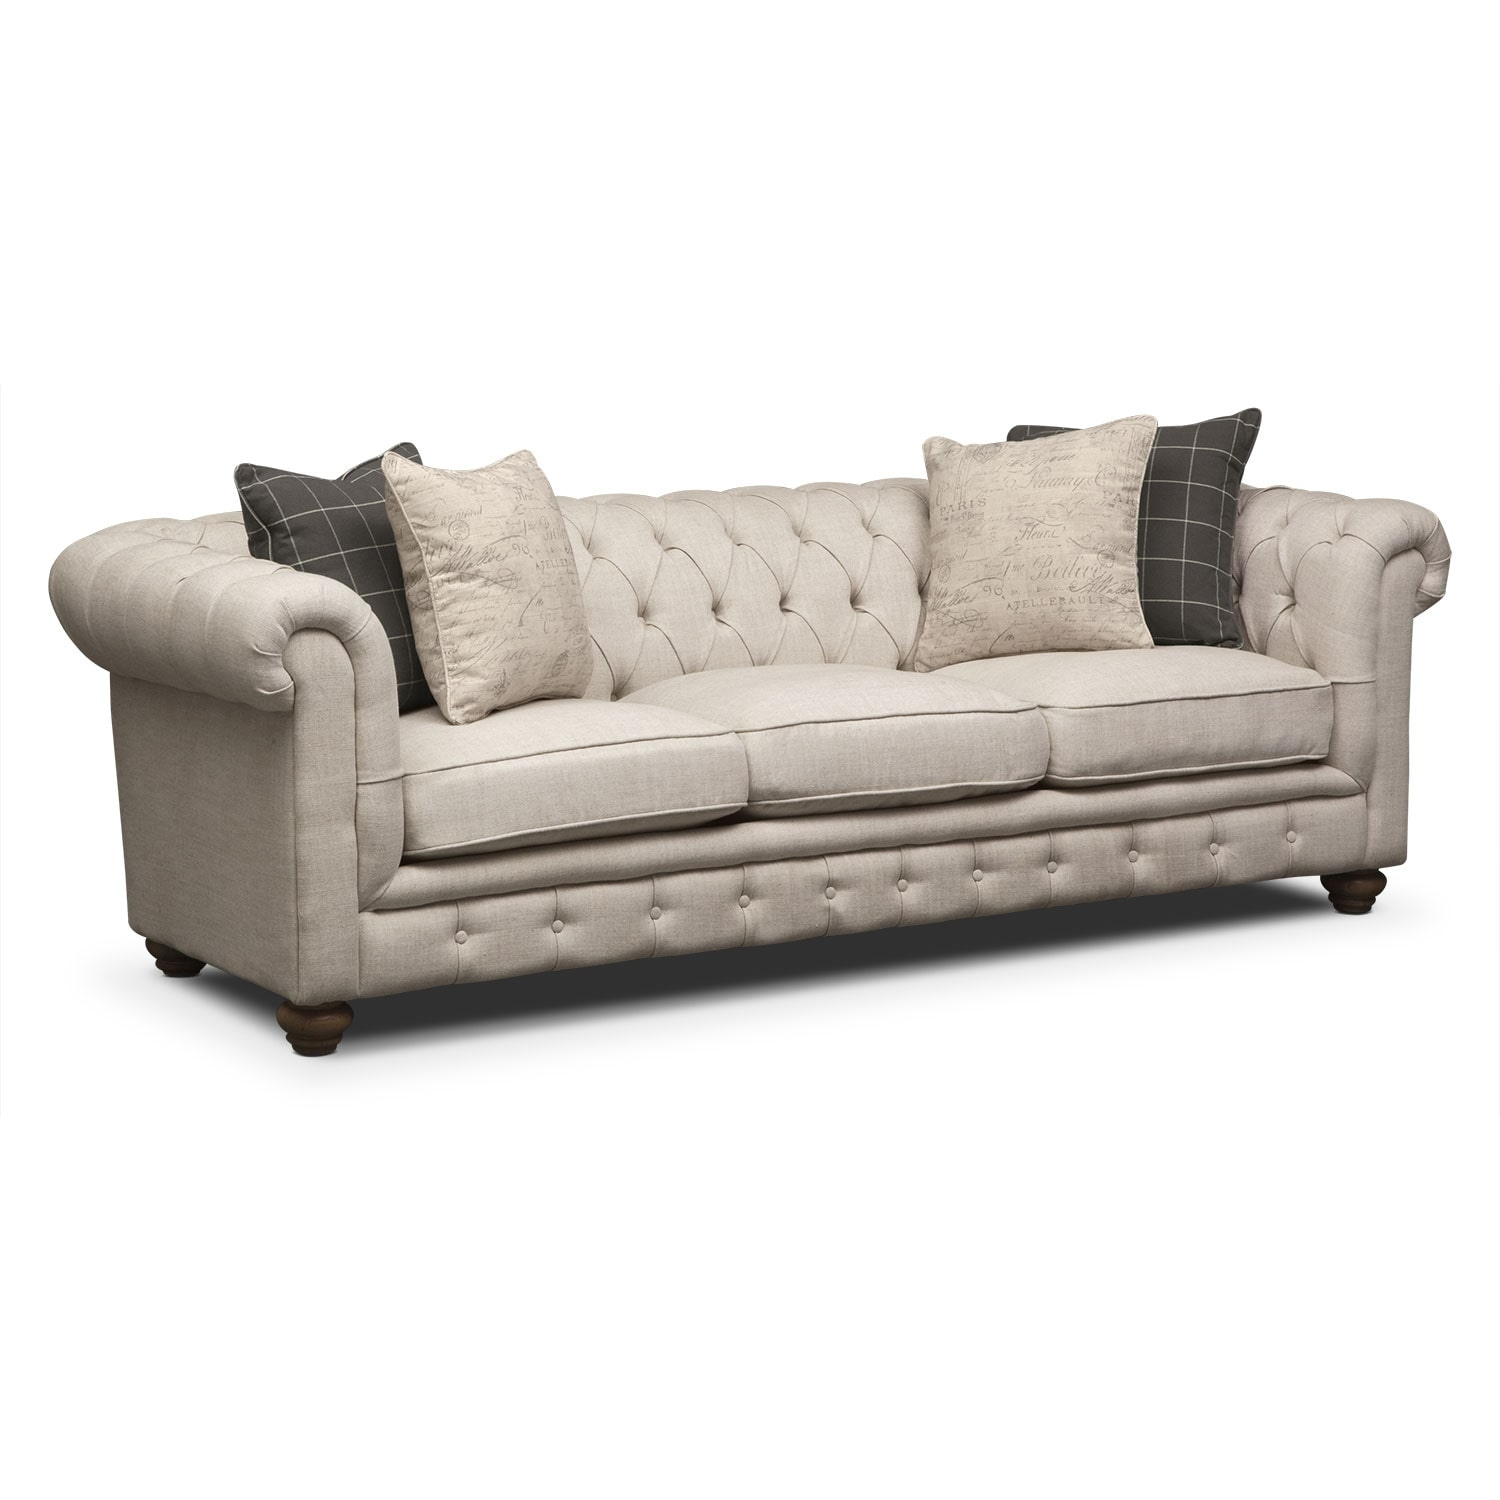 Living Room Furniture - Marquette Beige Sofa